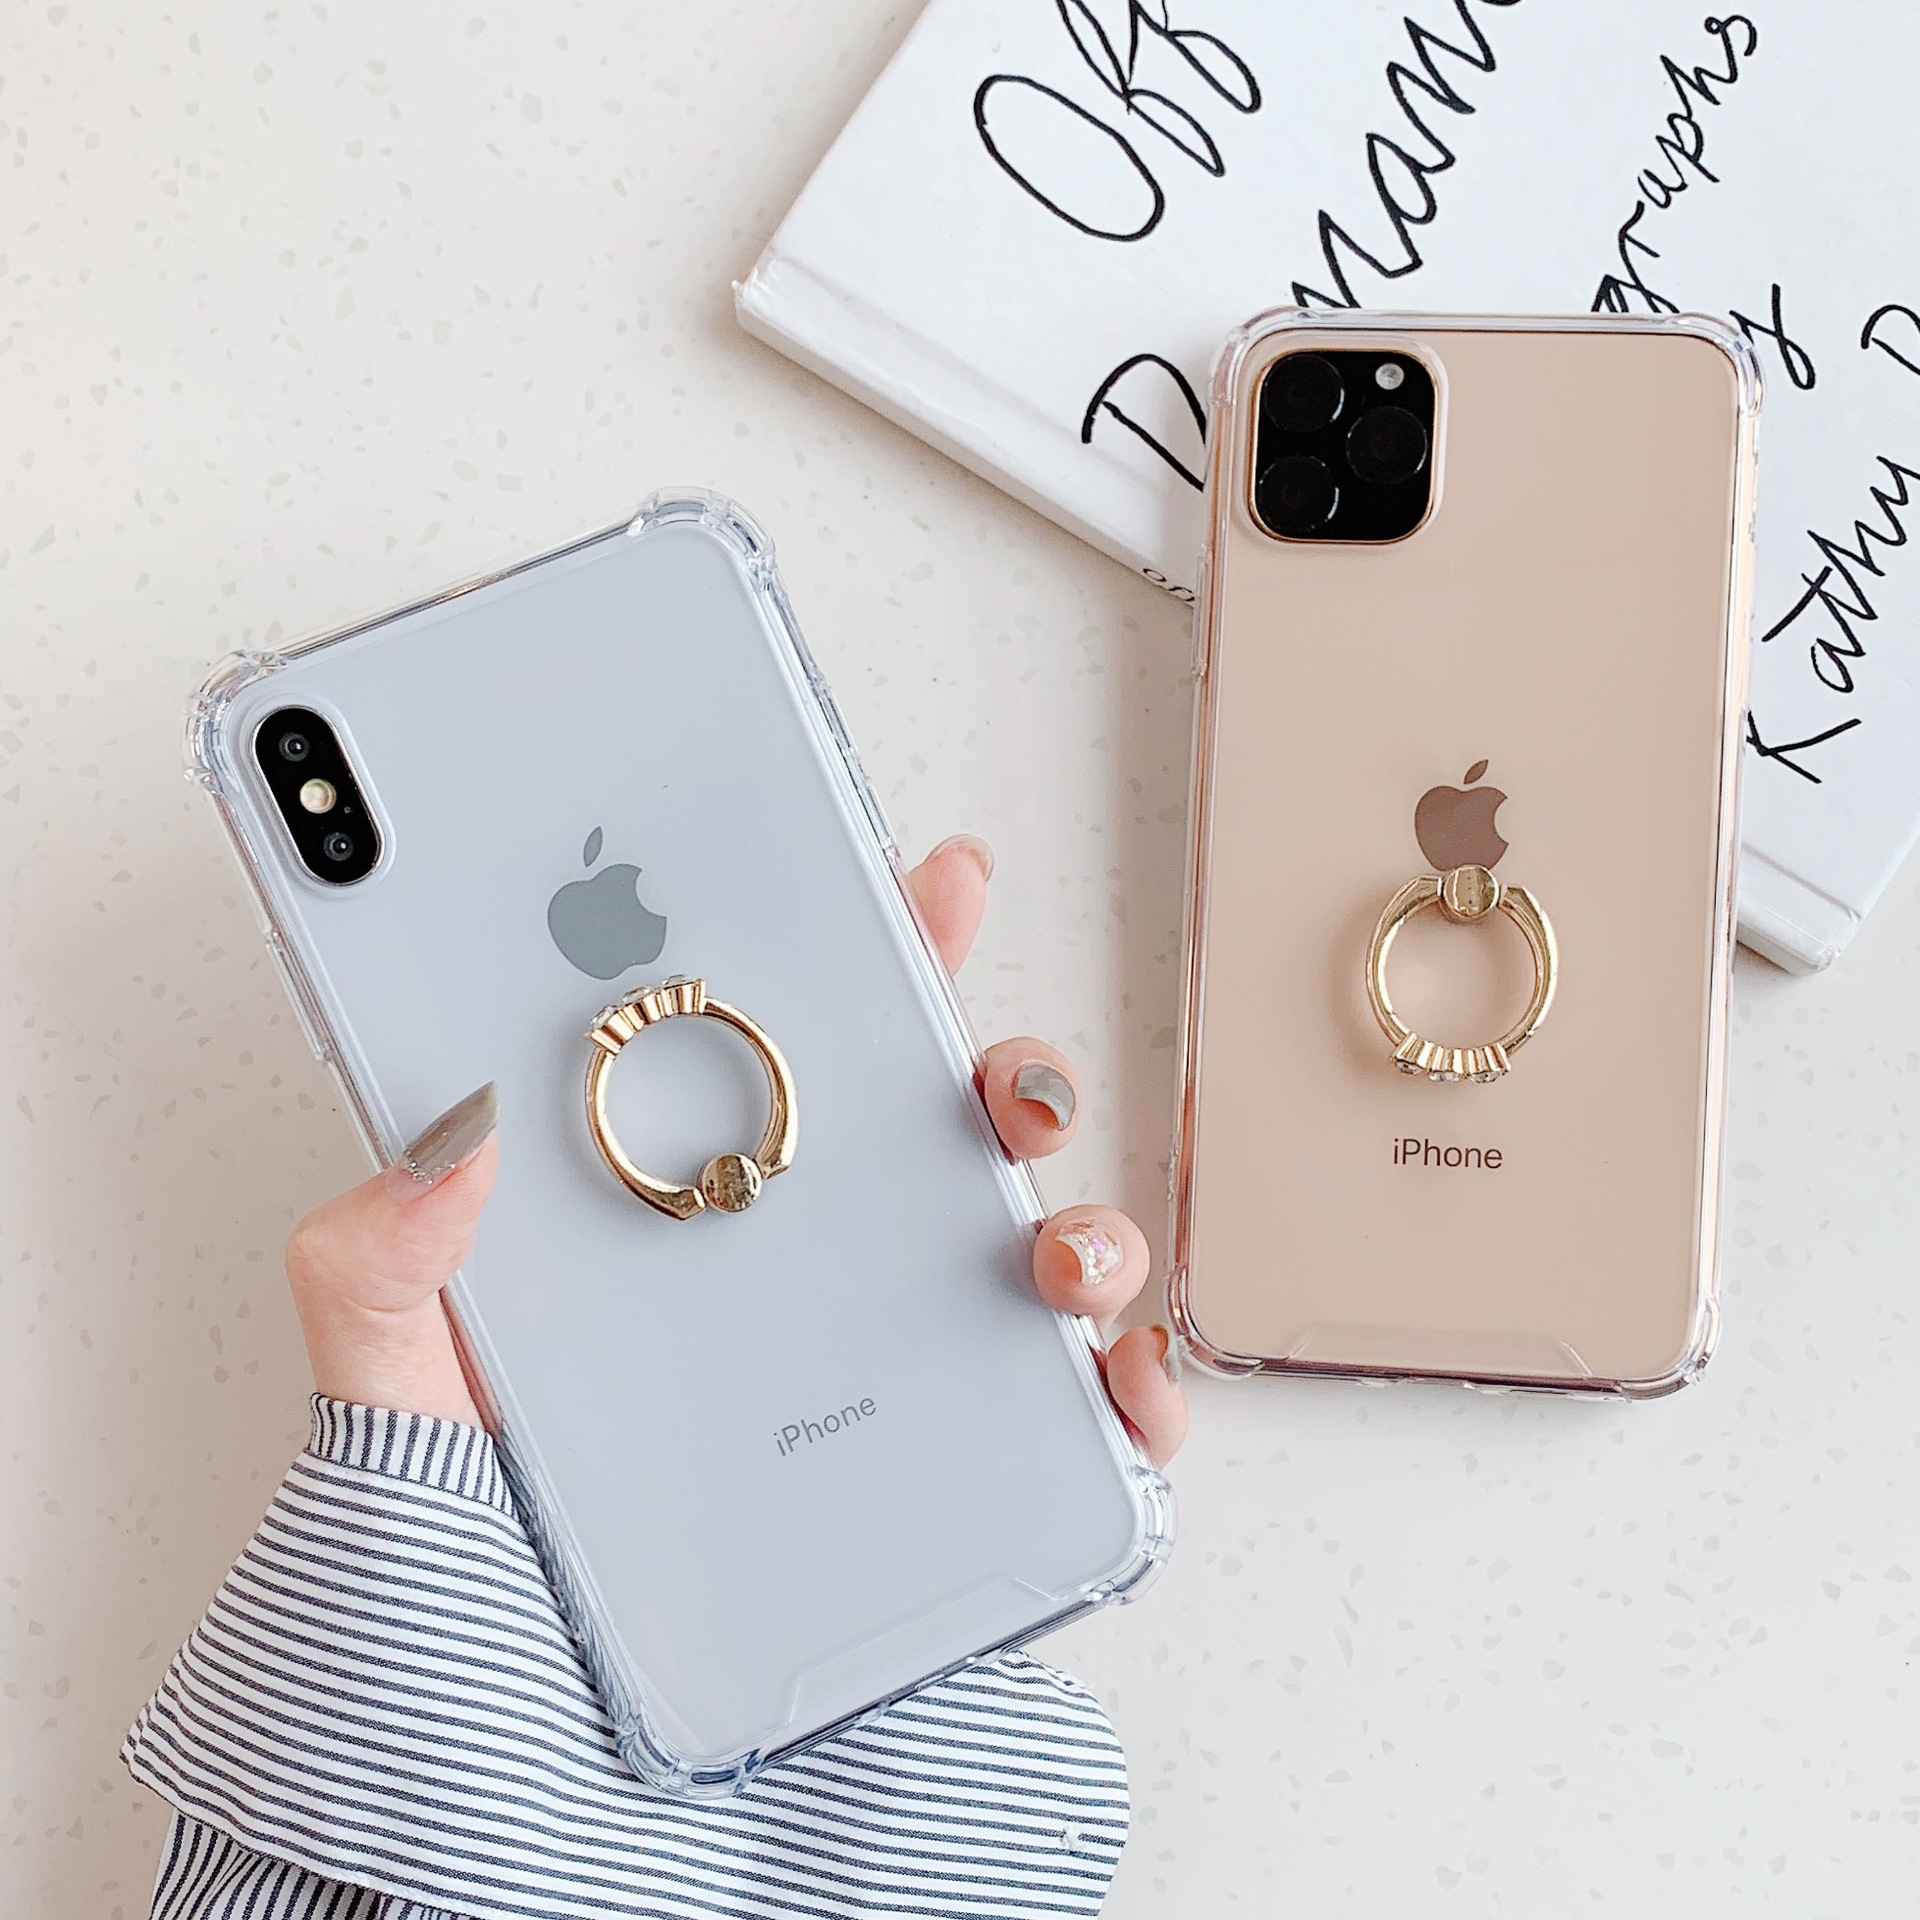 Transparent Case For iPhone 12 Mini 11 Pro Max XR X XS Max 8 7 Plus Case Luxury Gold Finger Ring Back Cover Acrylic Fundas Coque